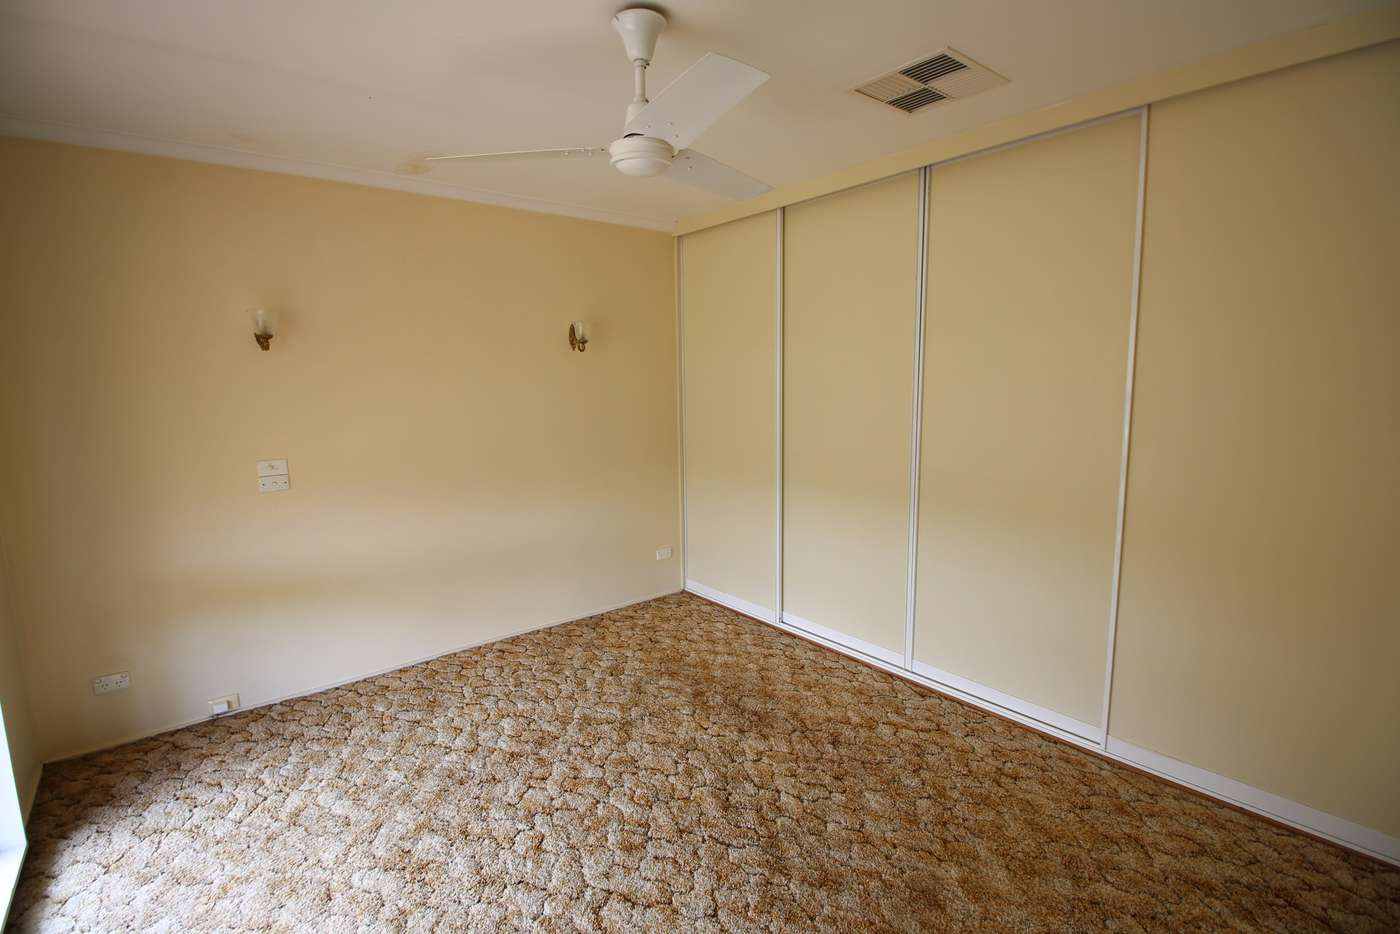 Sixth view of Homely house listing, 308 Dick Road, Lavington NSW 2641